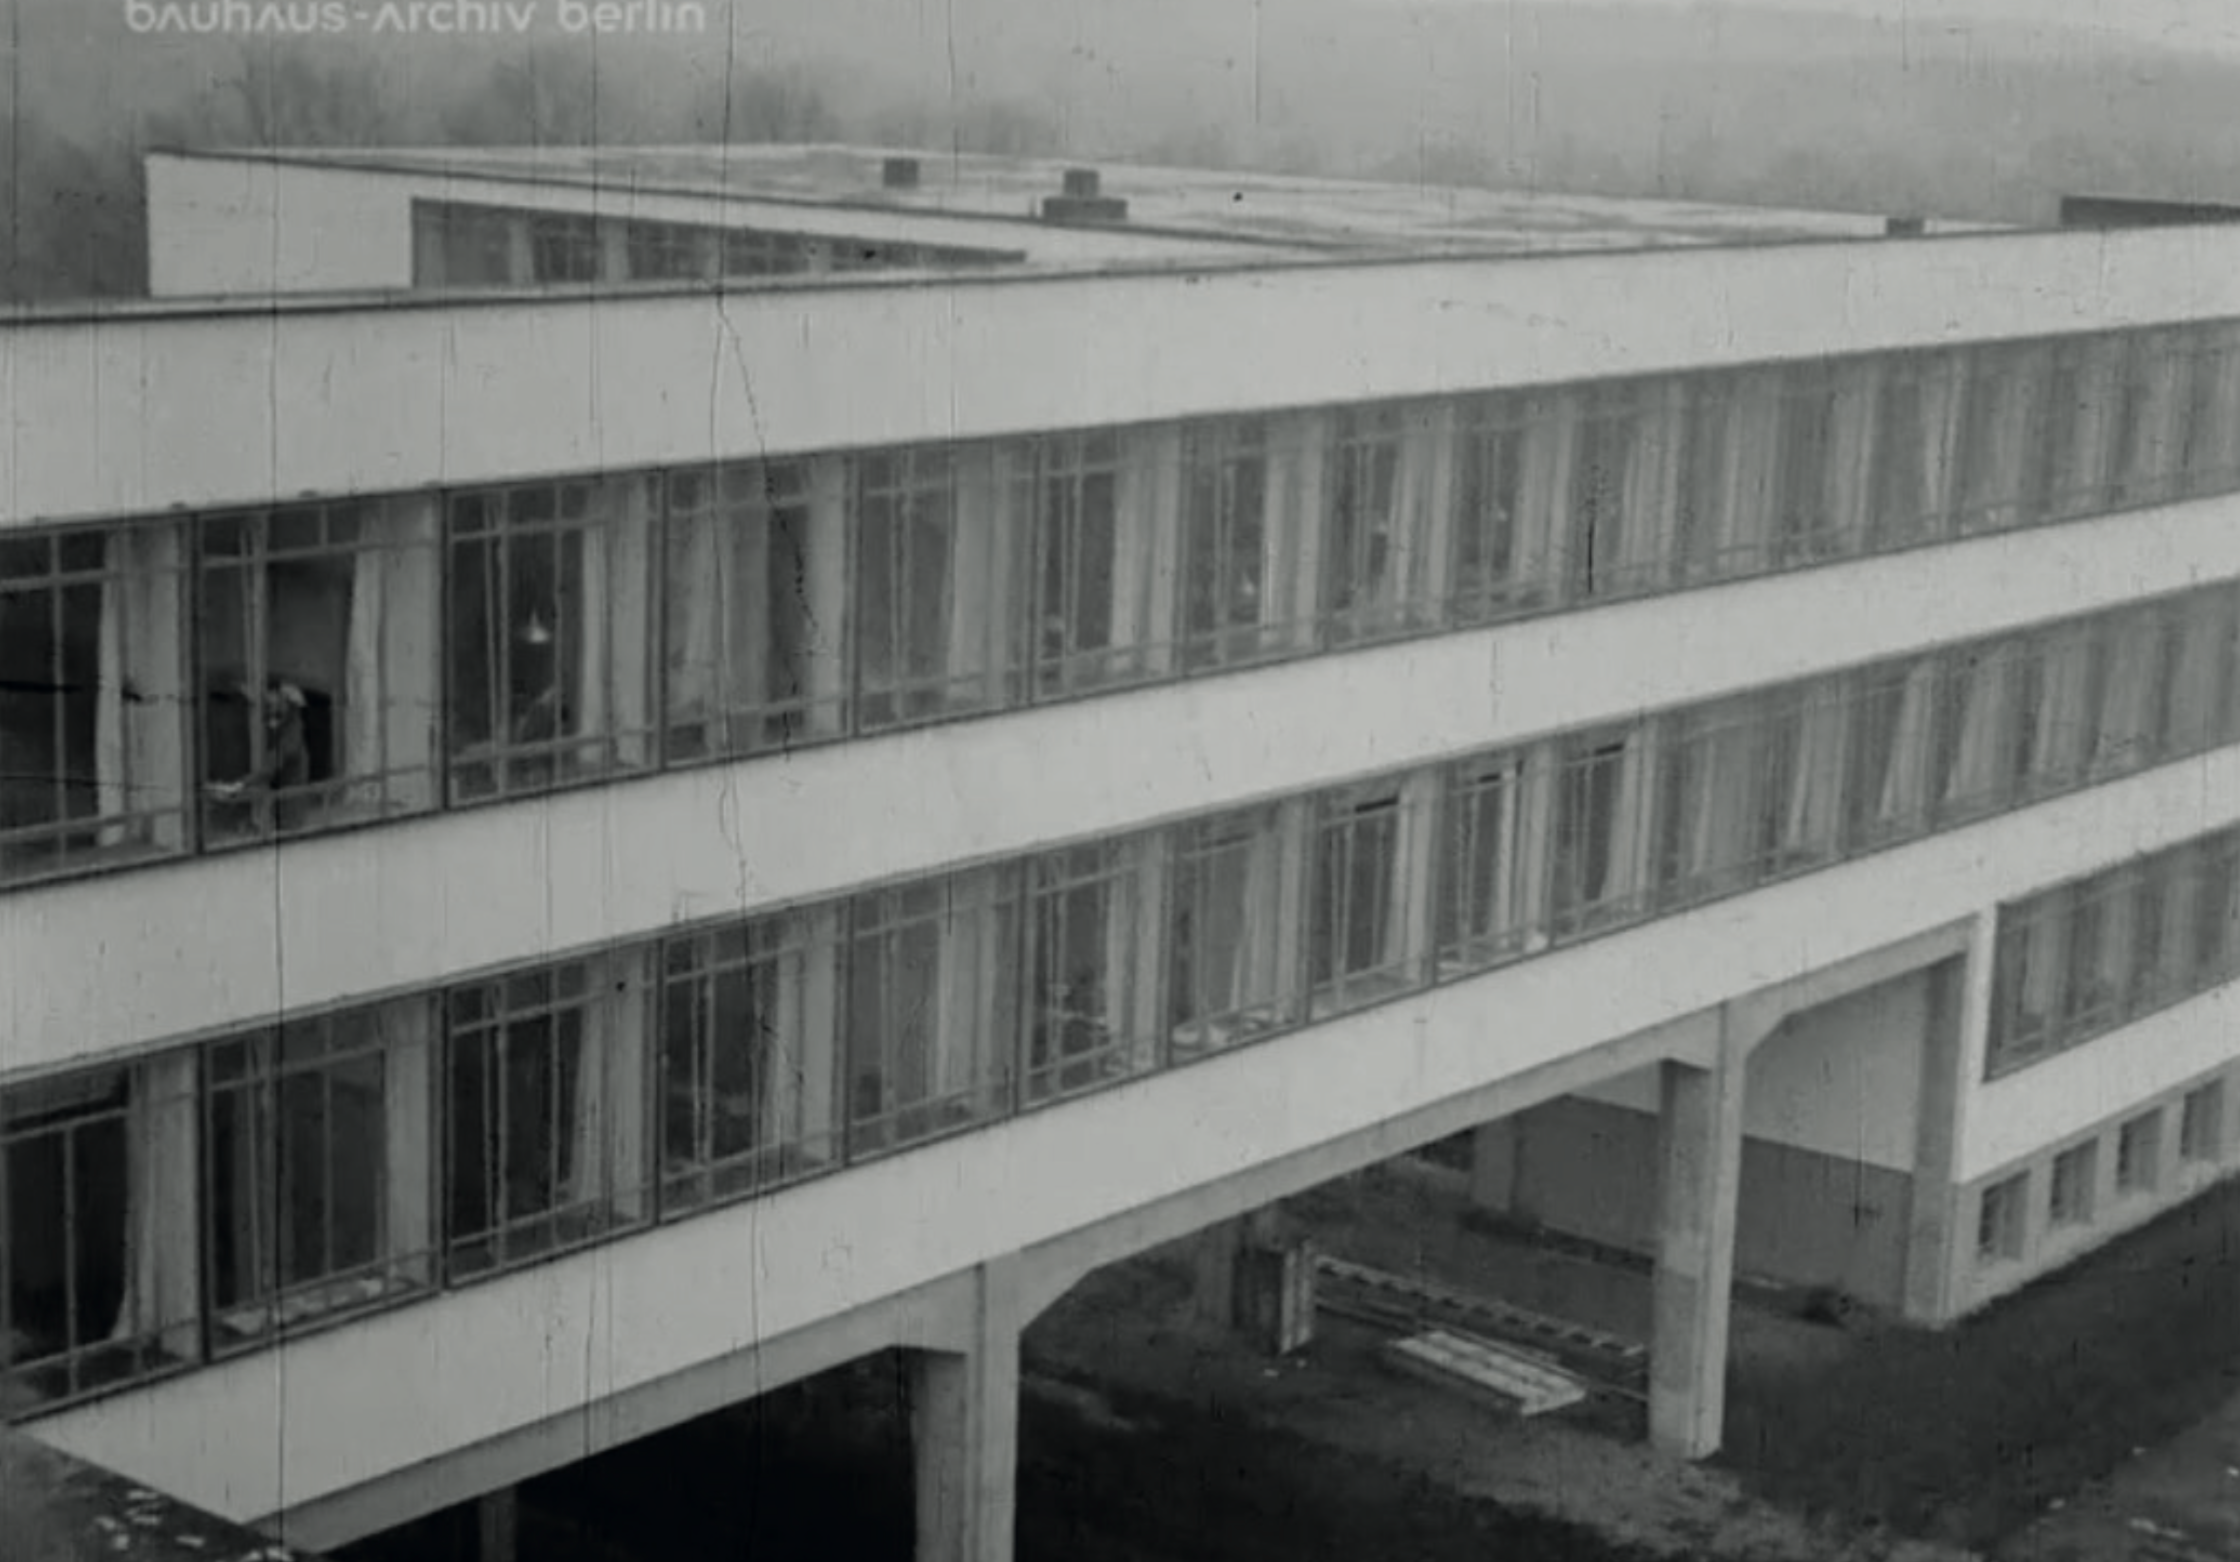 The workshop building of the school is a reinforced concrete construction with glass facade on several floors. Image from: How to live healthily and economically? Film series in four episodes by Walter Gropius and the Humboldt film GMBH, 1926.